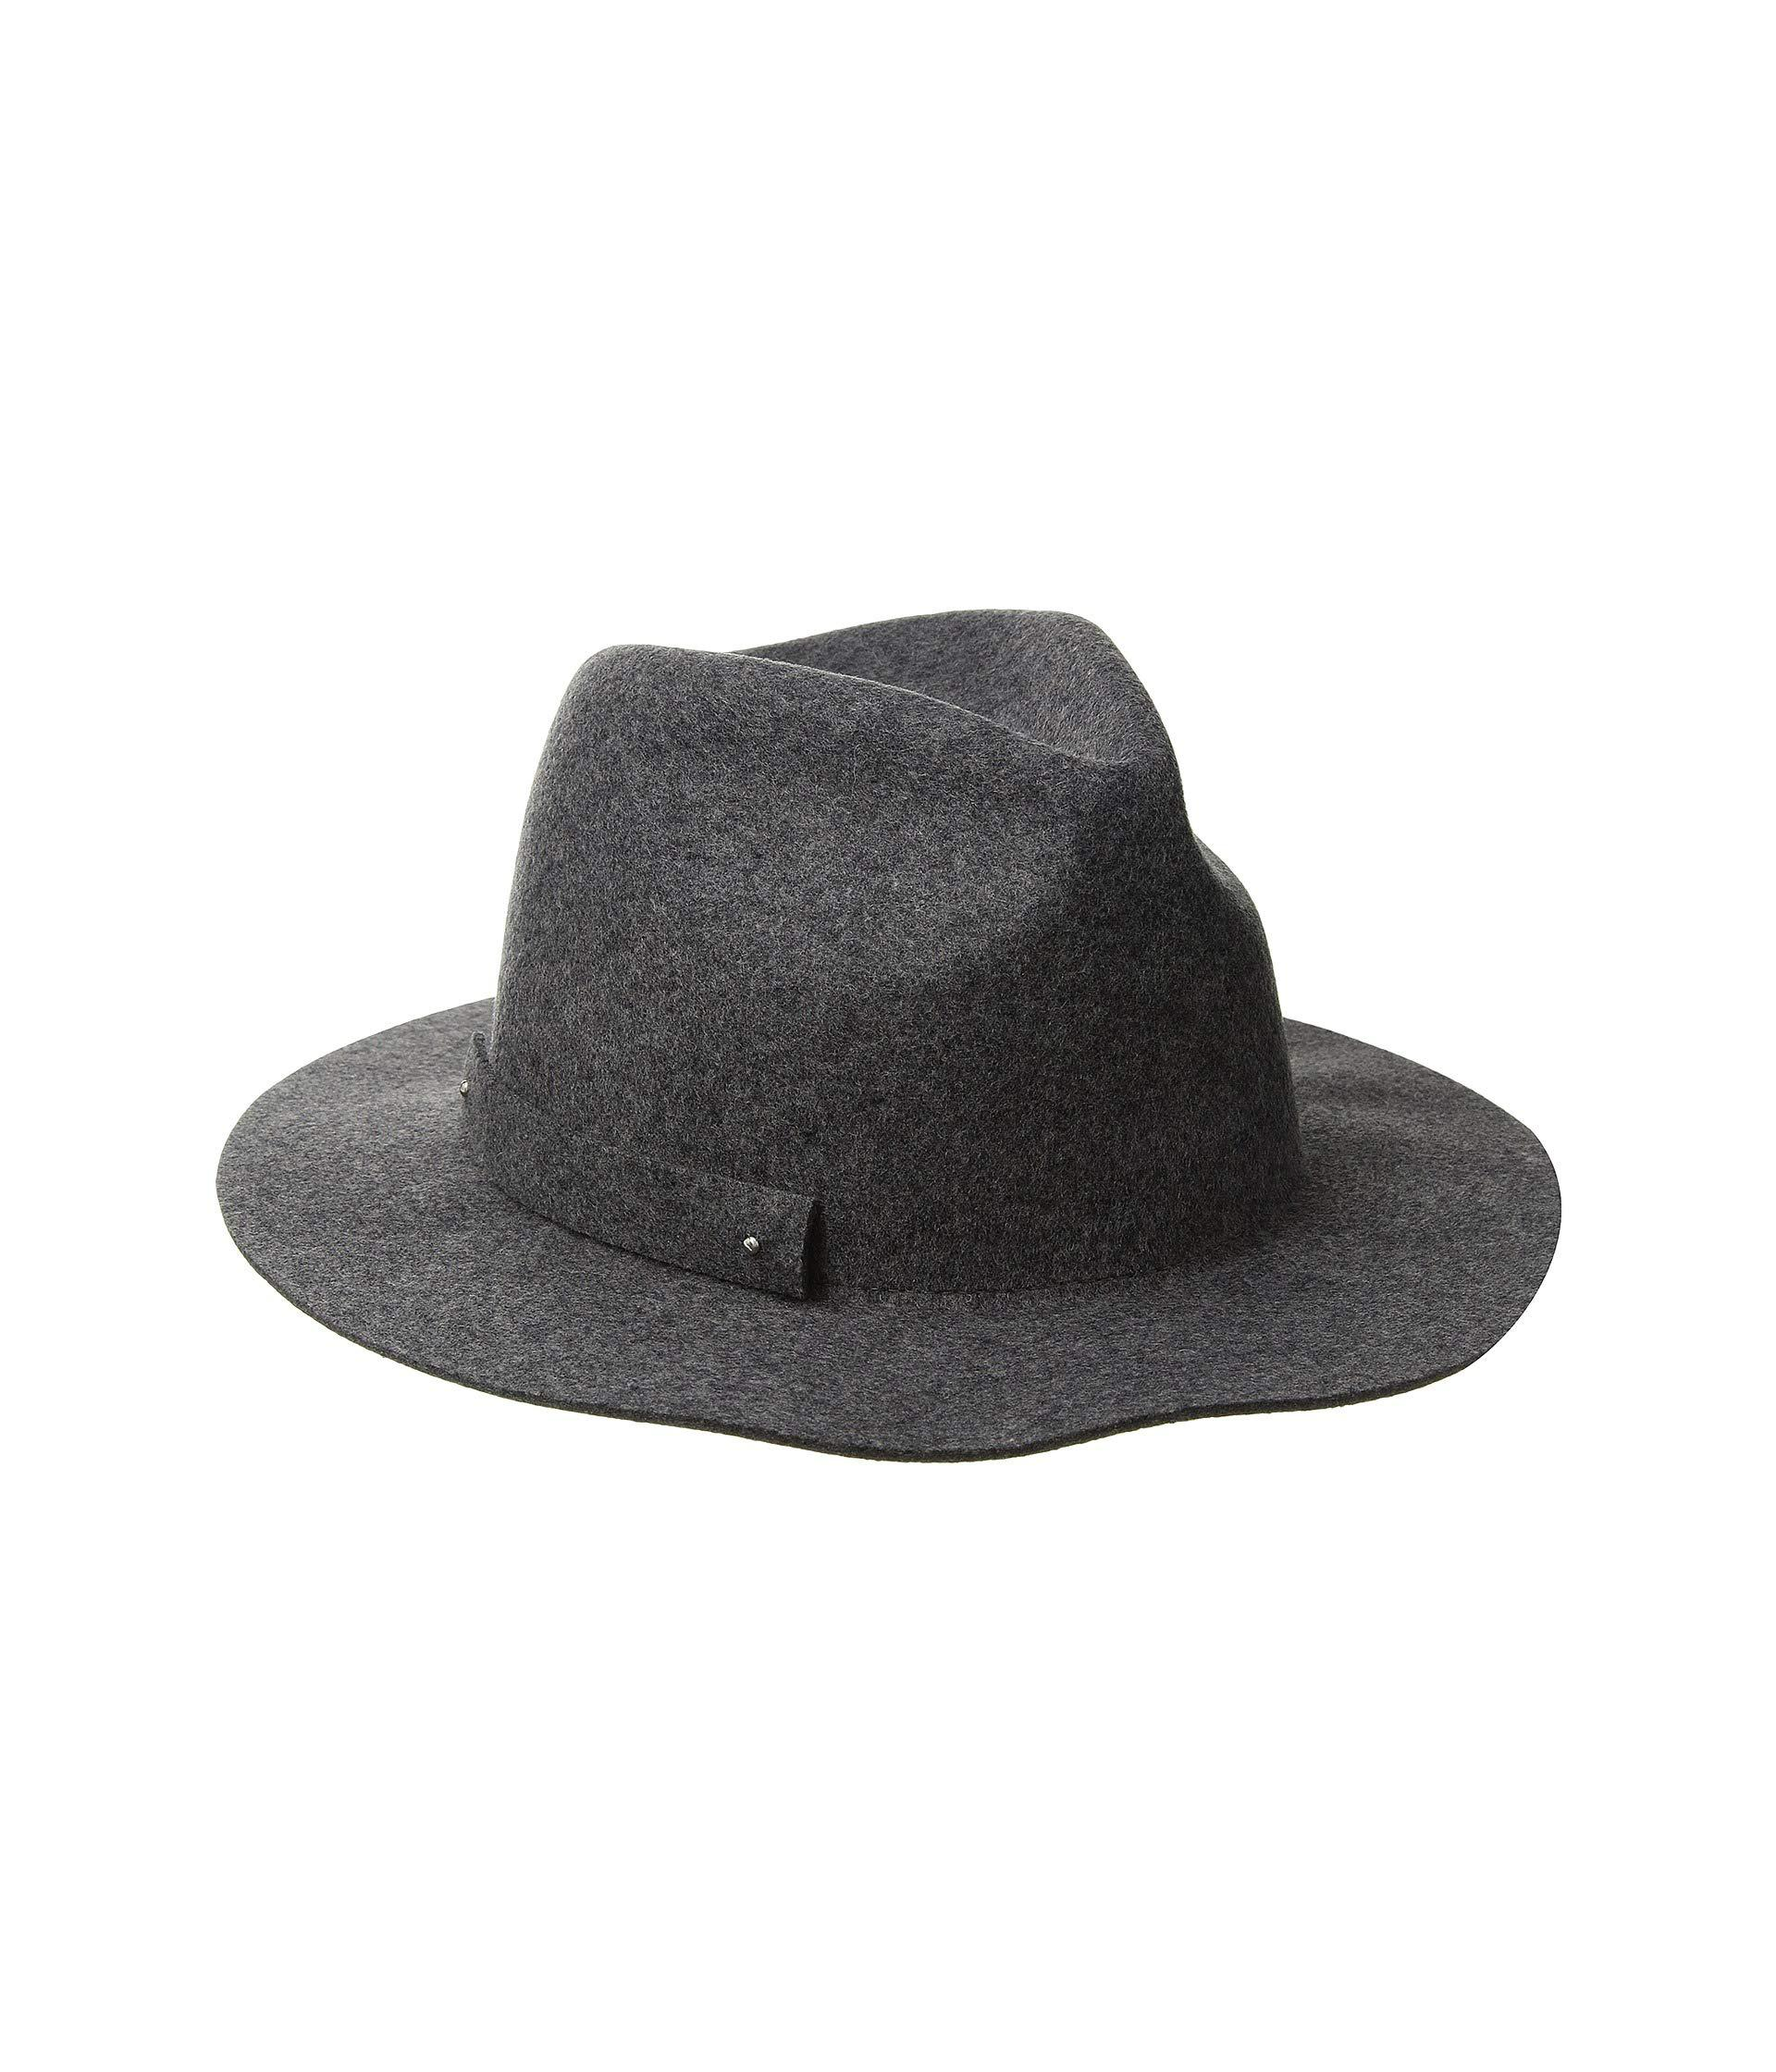 82cefdcb2e1 Lyst - San Diego Hat Company Wfh8205 Packable Felt Fedora (charcoal ...